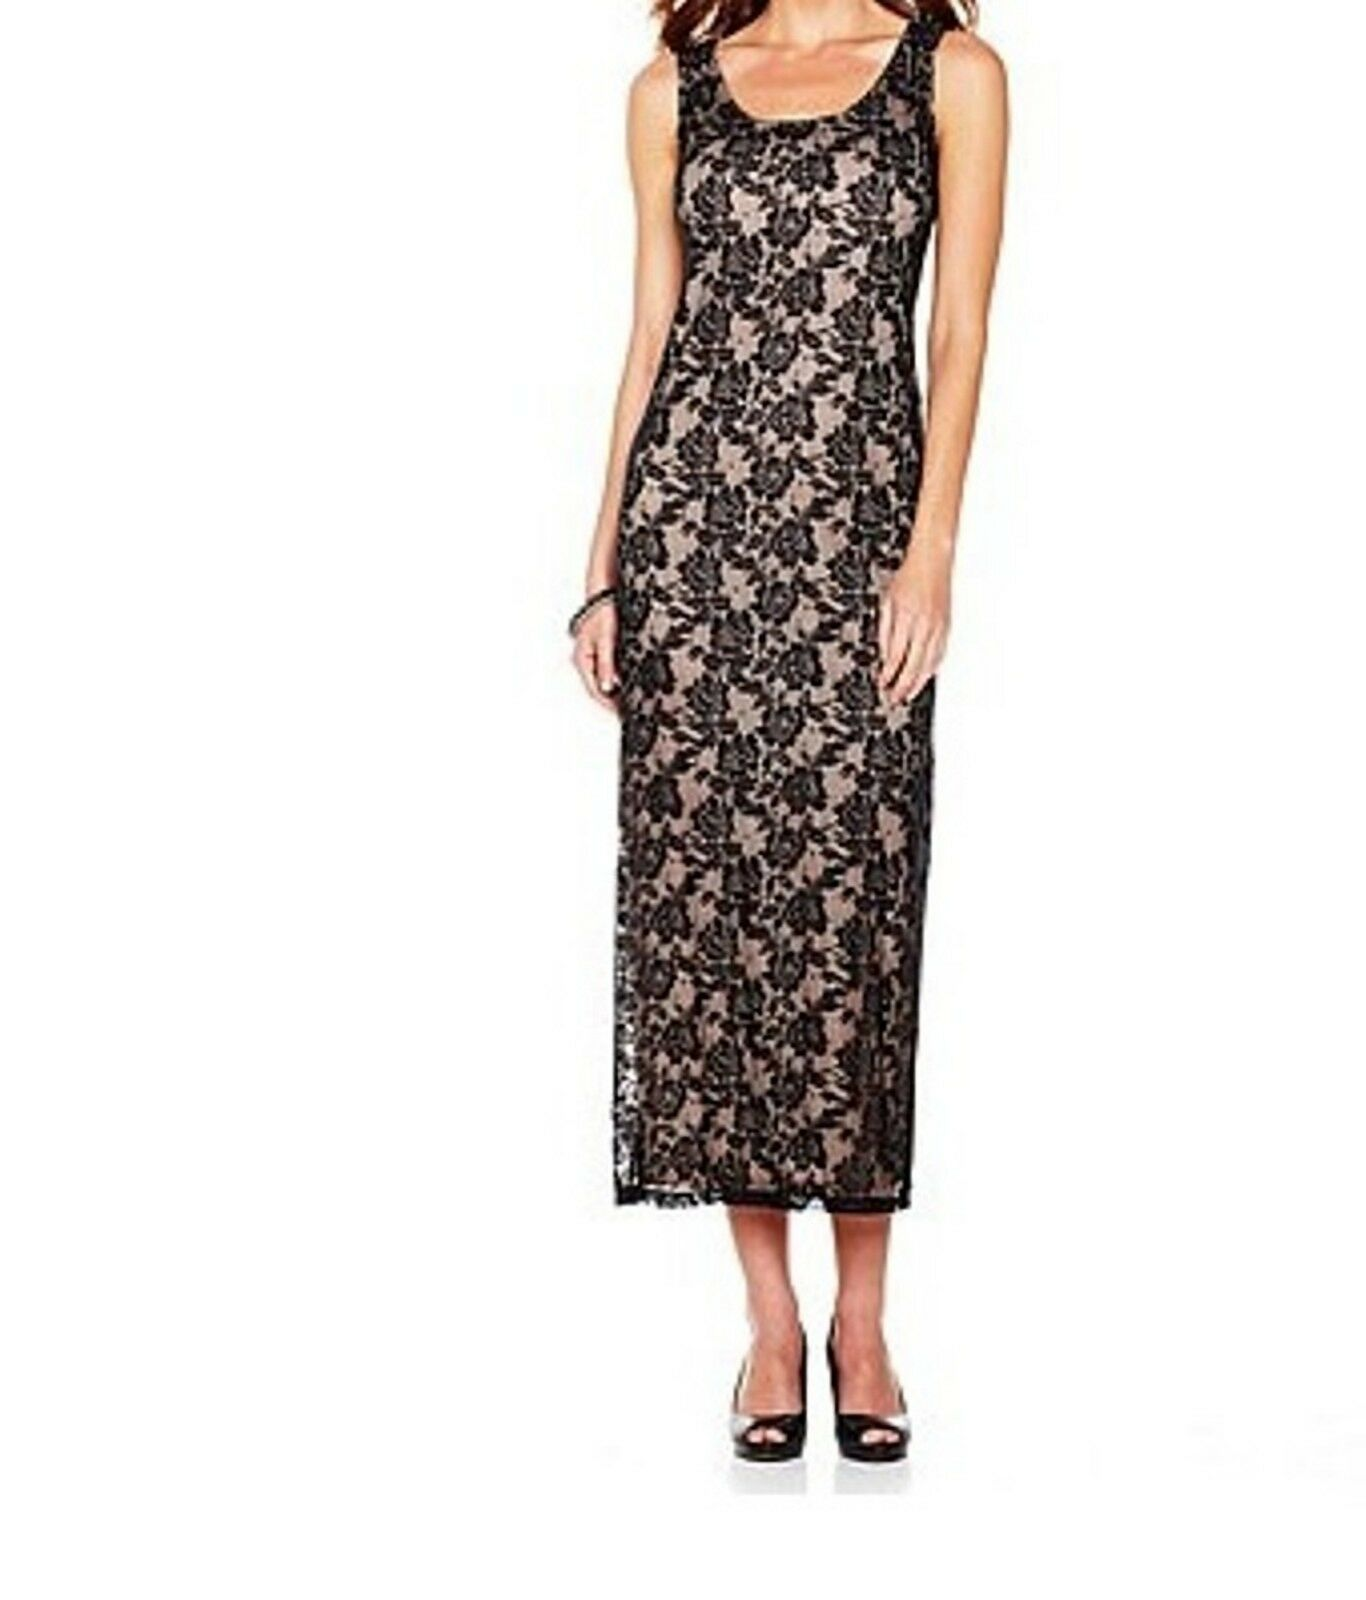 Woherren Summer Cruise Vacation Cocktail  party Church Lace long Dress plus 1X